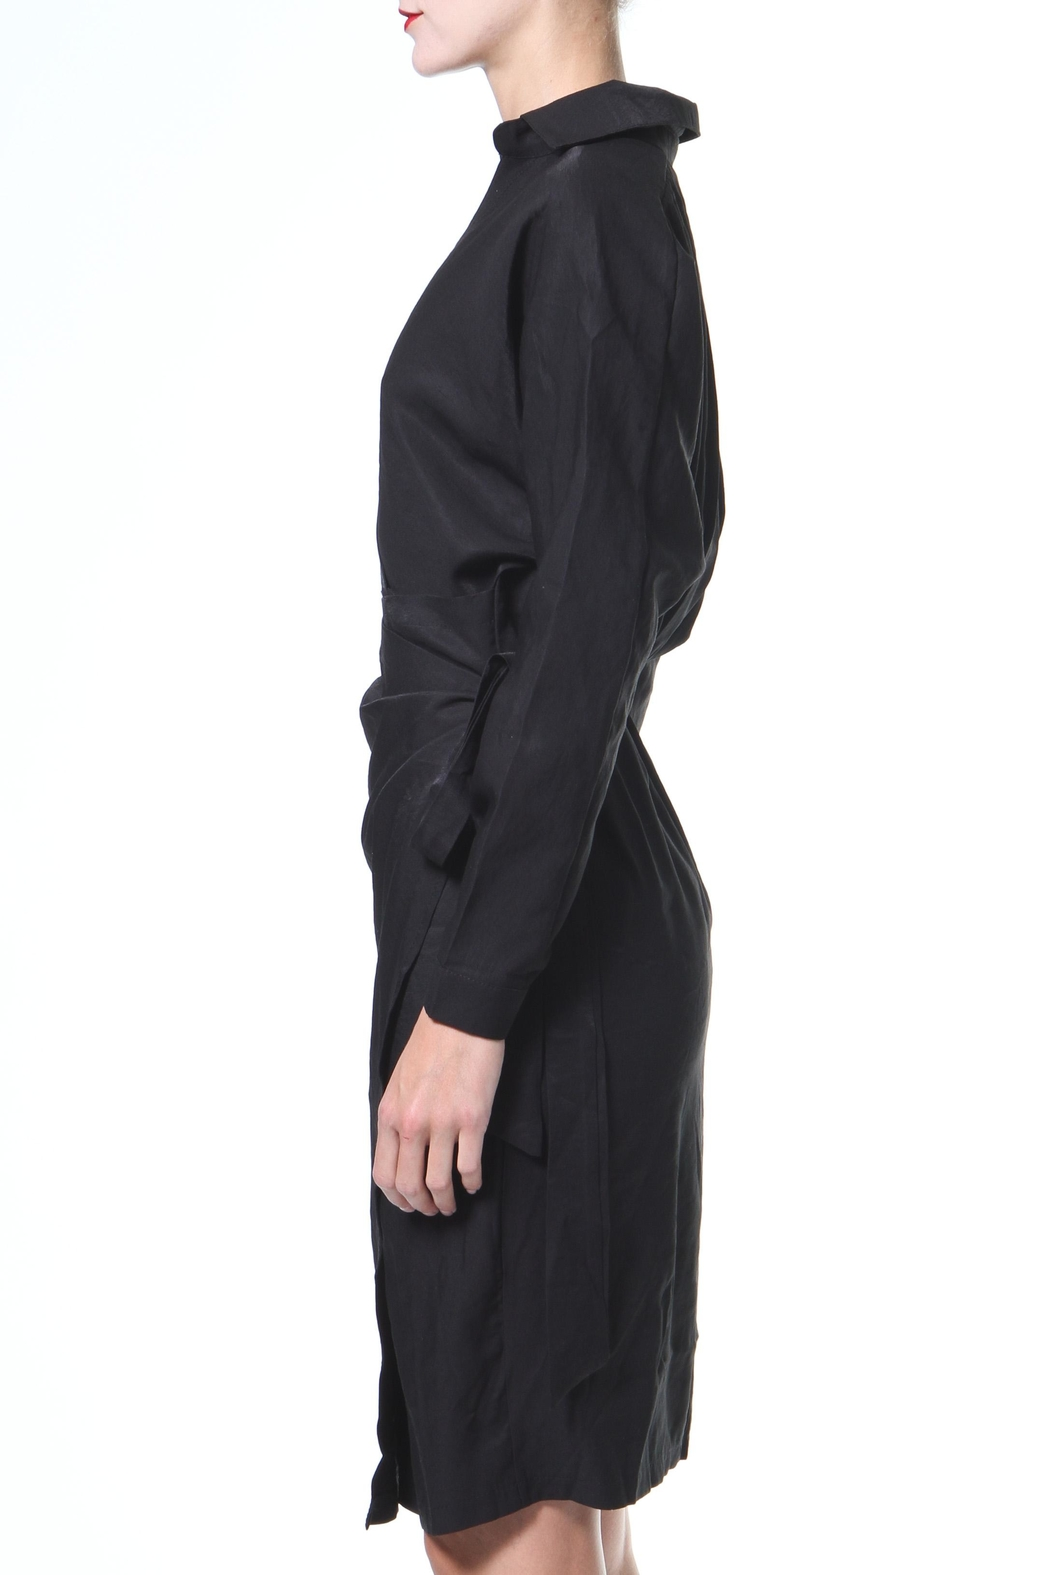 Madonna & Co Wrap Front Dress - Front Full Image